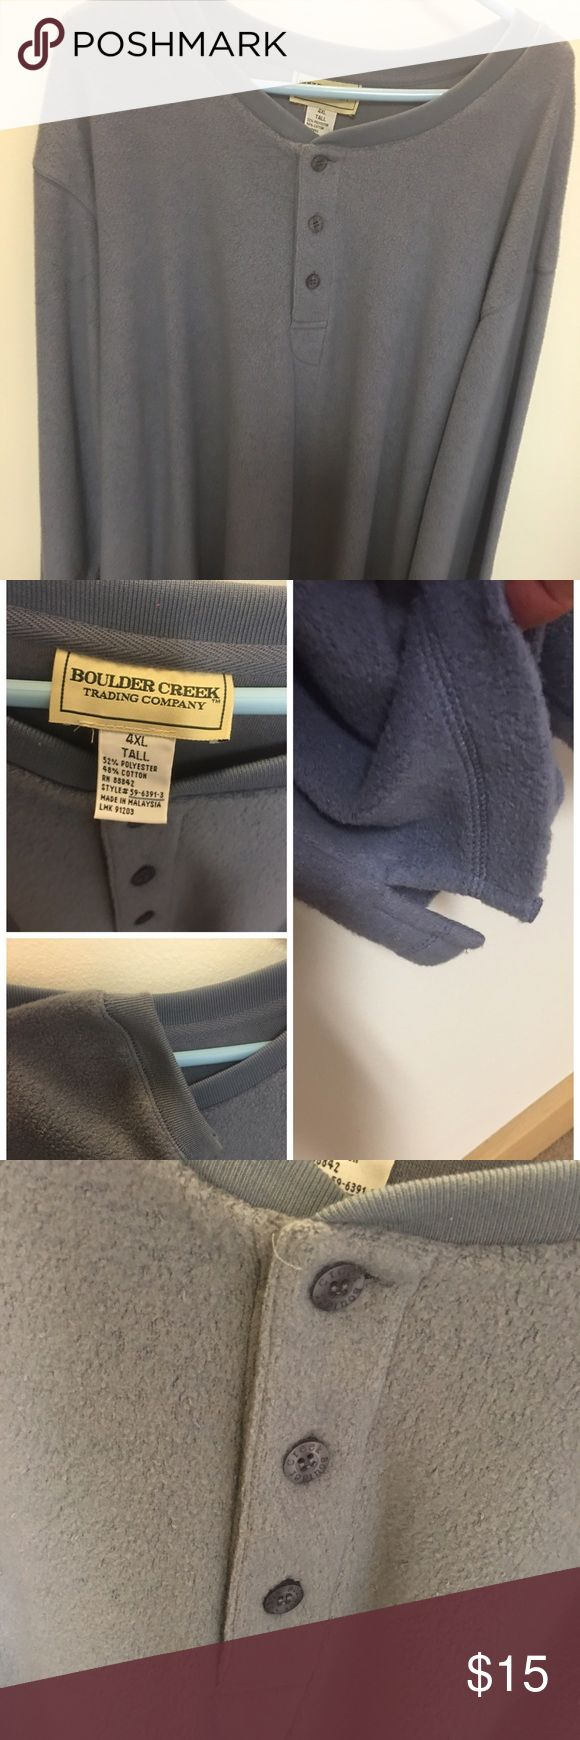 Slate blue fleece long sleeve pullover New never worn no tags- for the big/tall  guy in your life- purchased new and too big for hubby Boulder Creek Shirts Sweatshirts & Hoodies